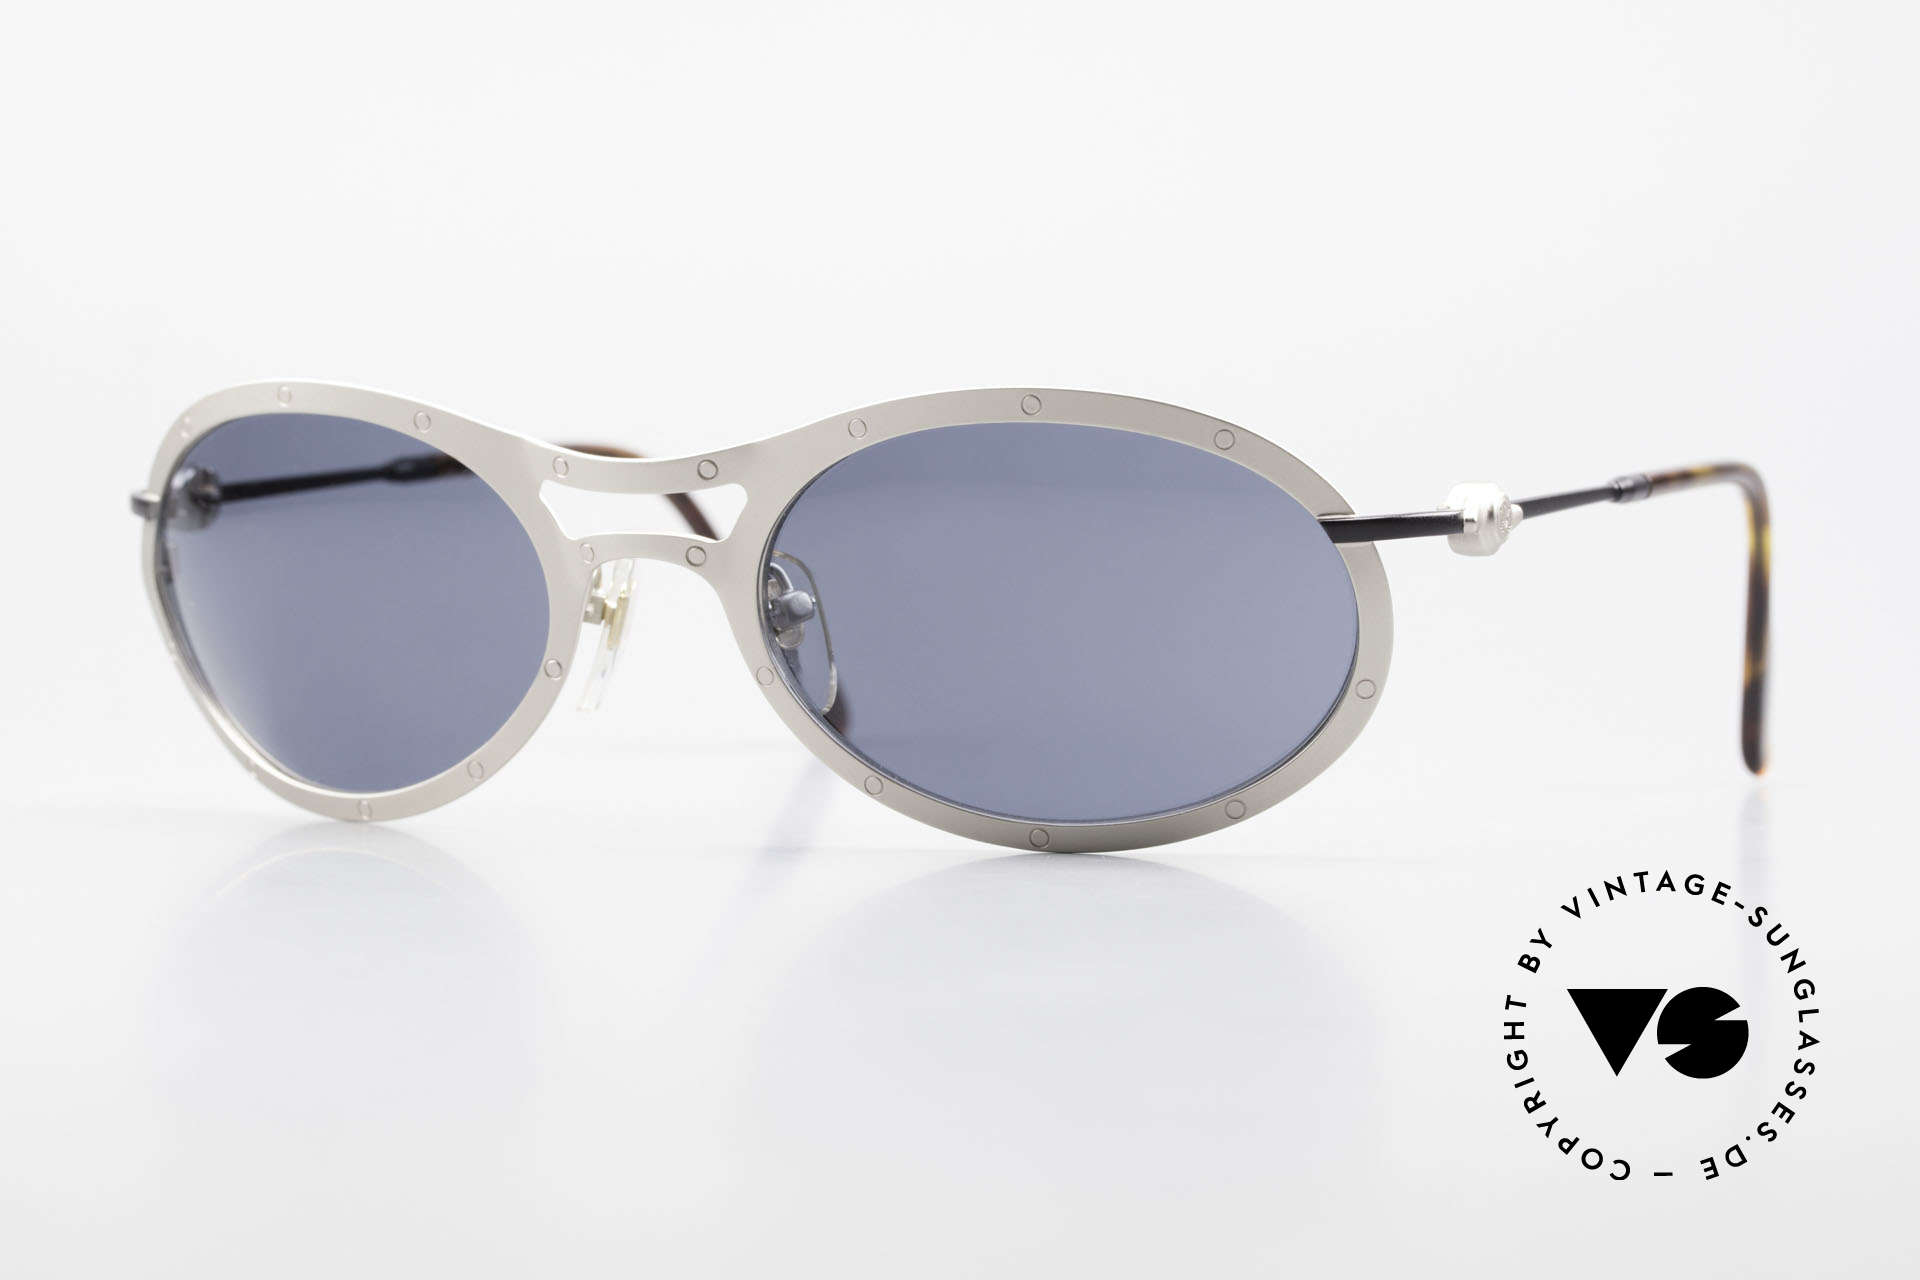 Aston Martin AM33 Sporty Men's Sunglasses 90's, Aston Martin vintage luxury designer sunglasses, 59°22, Made for Men